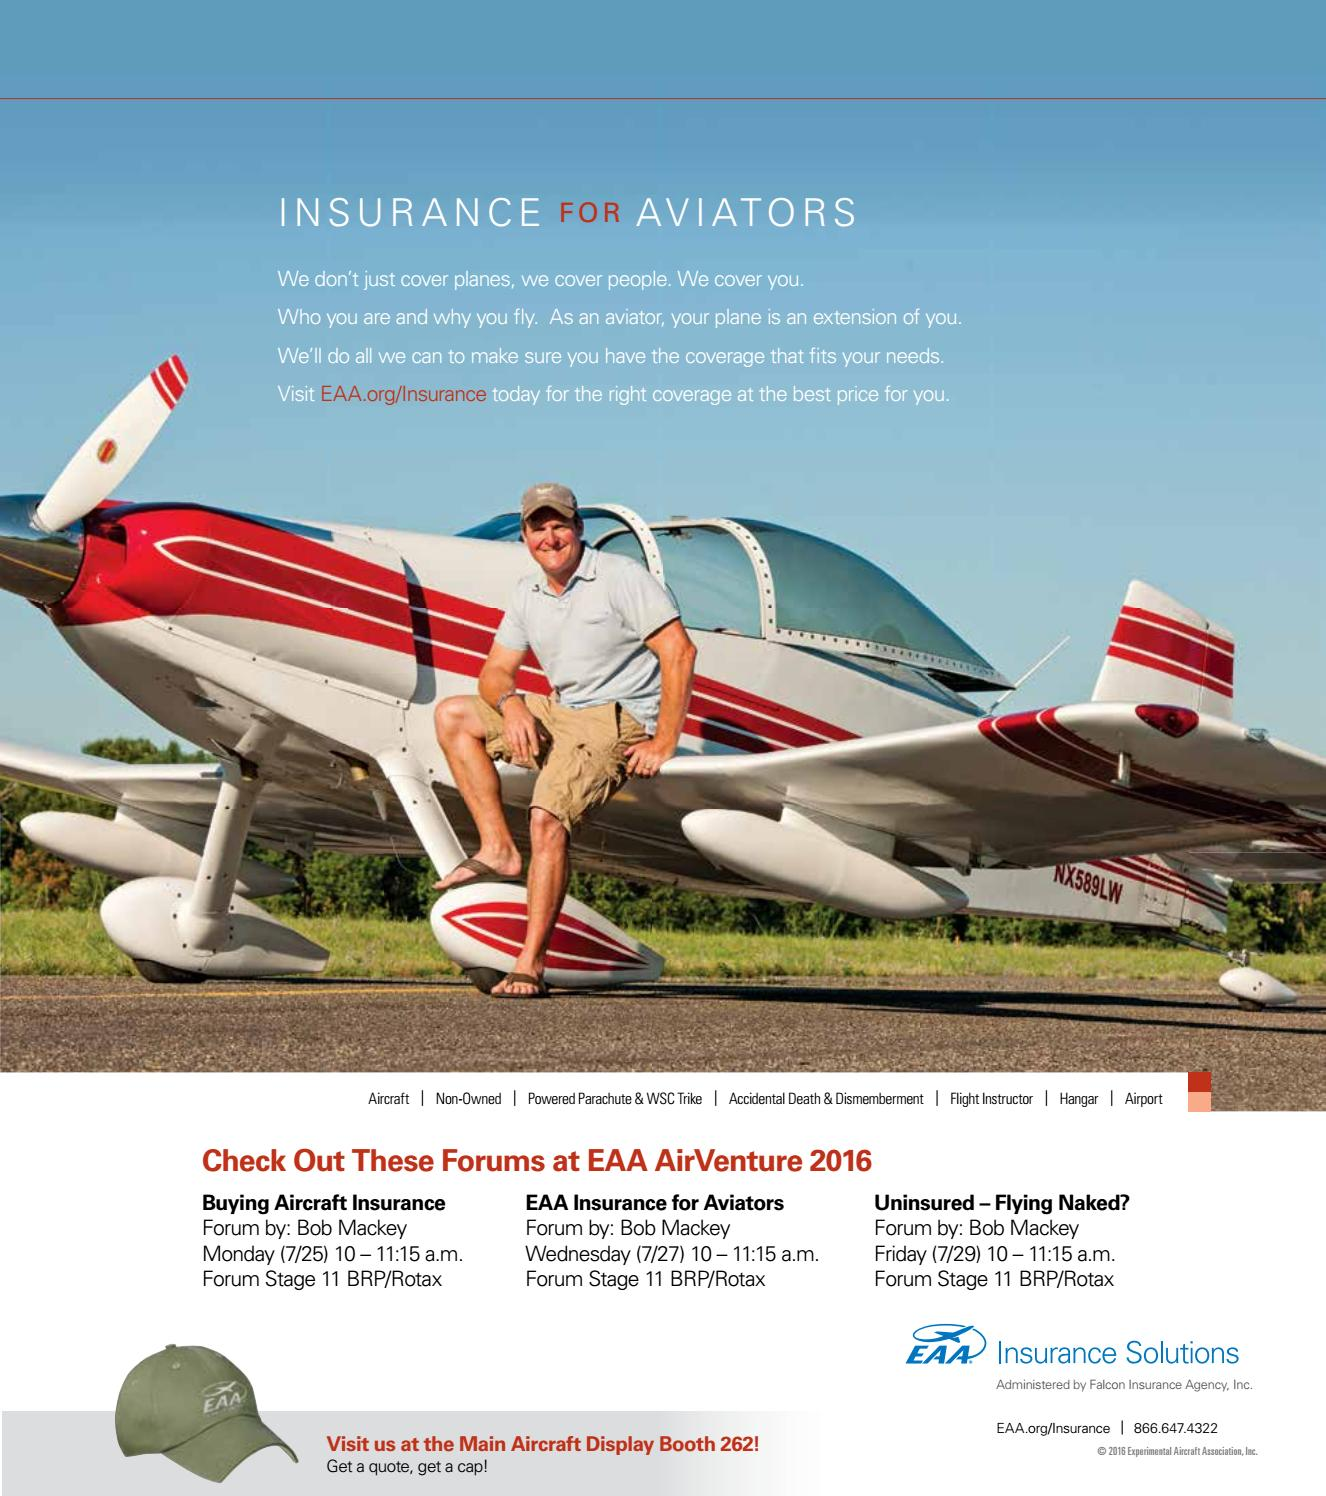 EAA AirVenture Today - Monday, July 25, 2016 by EAA